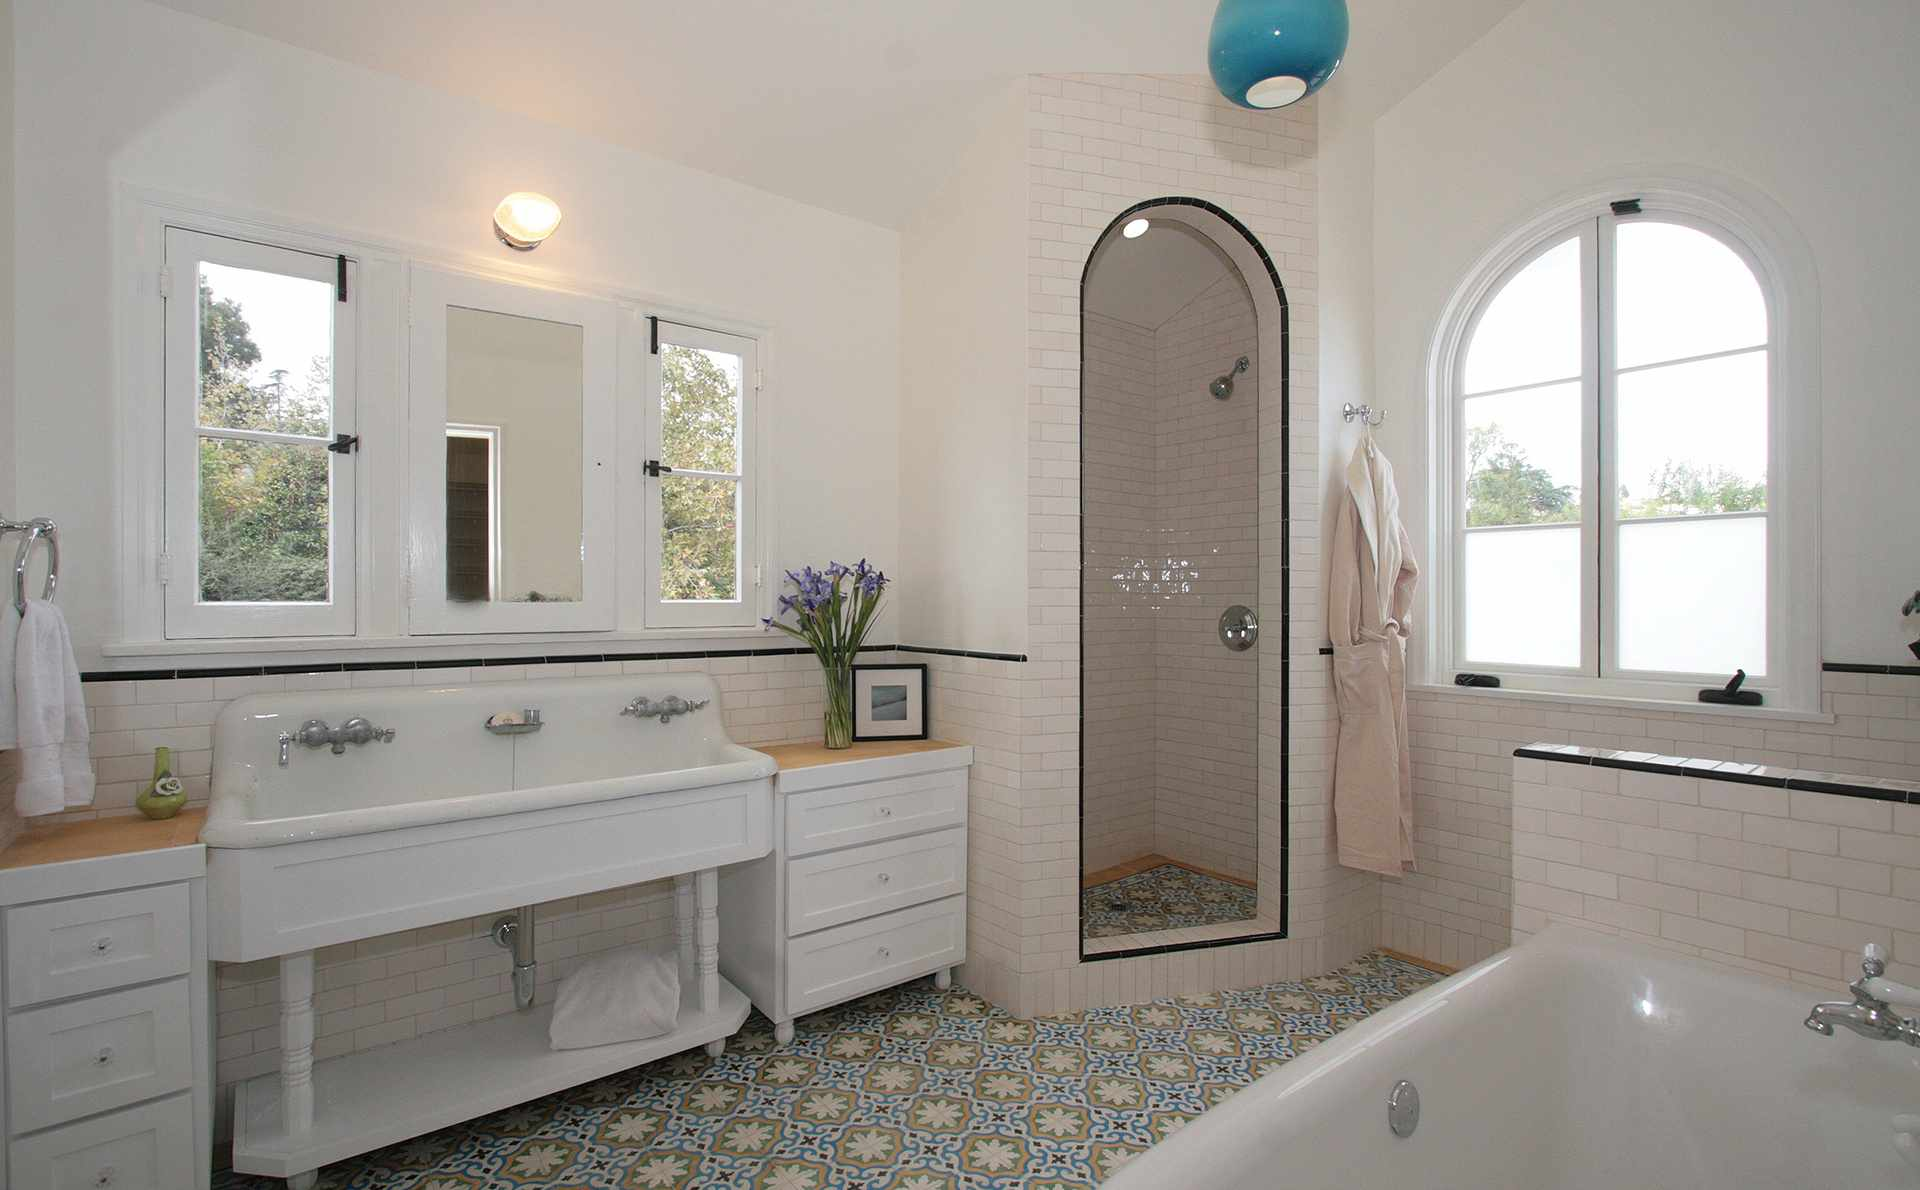 A Modern Living Room, Beautiful Bathrooms With Stylish Pedestal Sinks